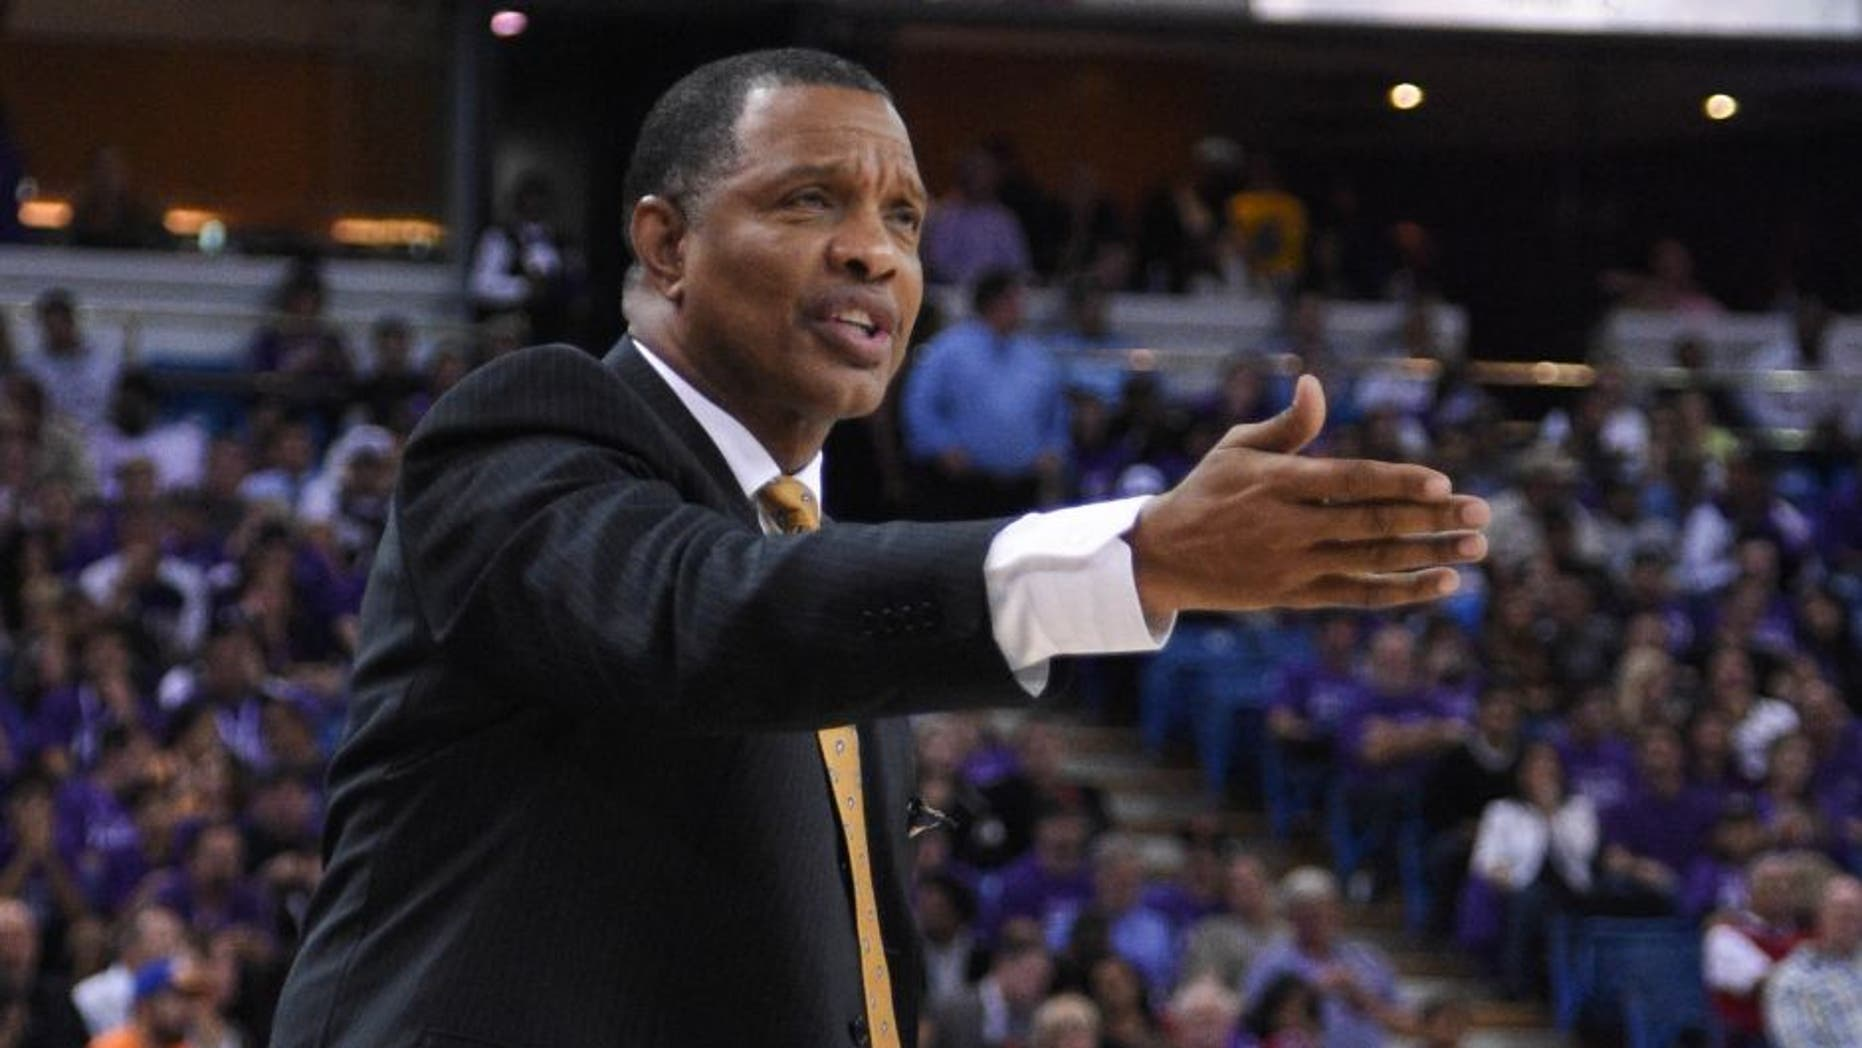 October 29, 2014; Sacramento, CA, USA; Golden State Warriors associate head coach Alvin Gentry reacts during the third quarter against the Sacramento Kings at Sleep Train Arena. The Warriors defeated the Kings 95-77. Mandatory Credit: Kyle Terada-USA TODAY Sports